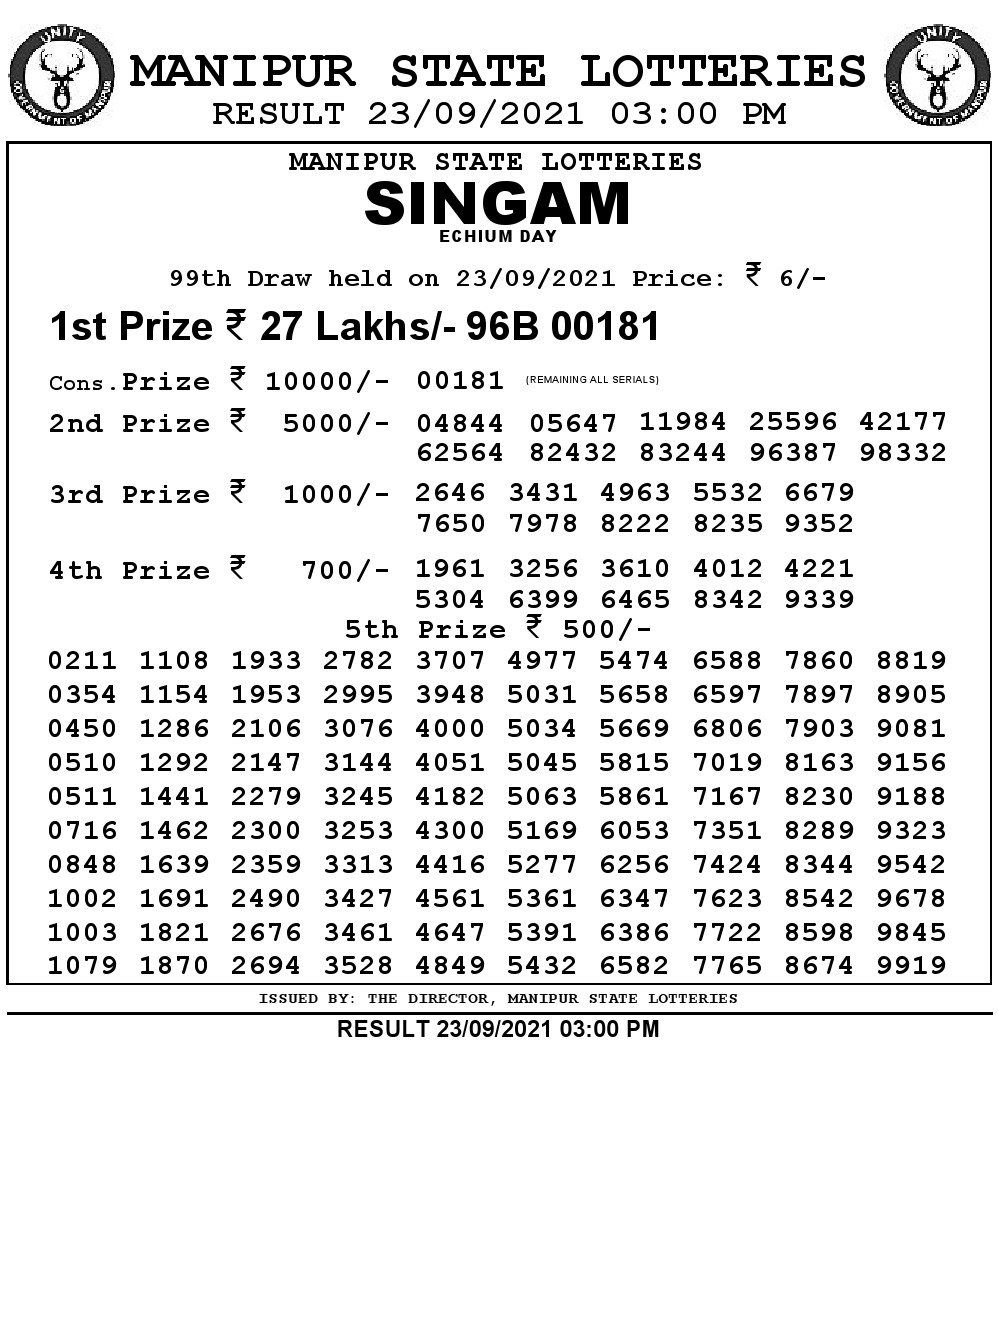 Manipur Lottery Result today 23/09/2021 singam 3pm pdf download